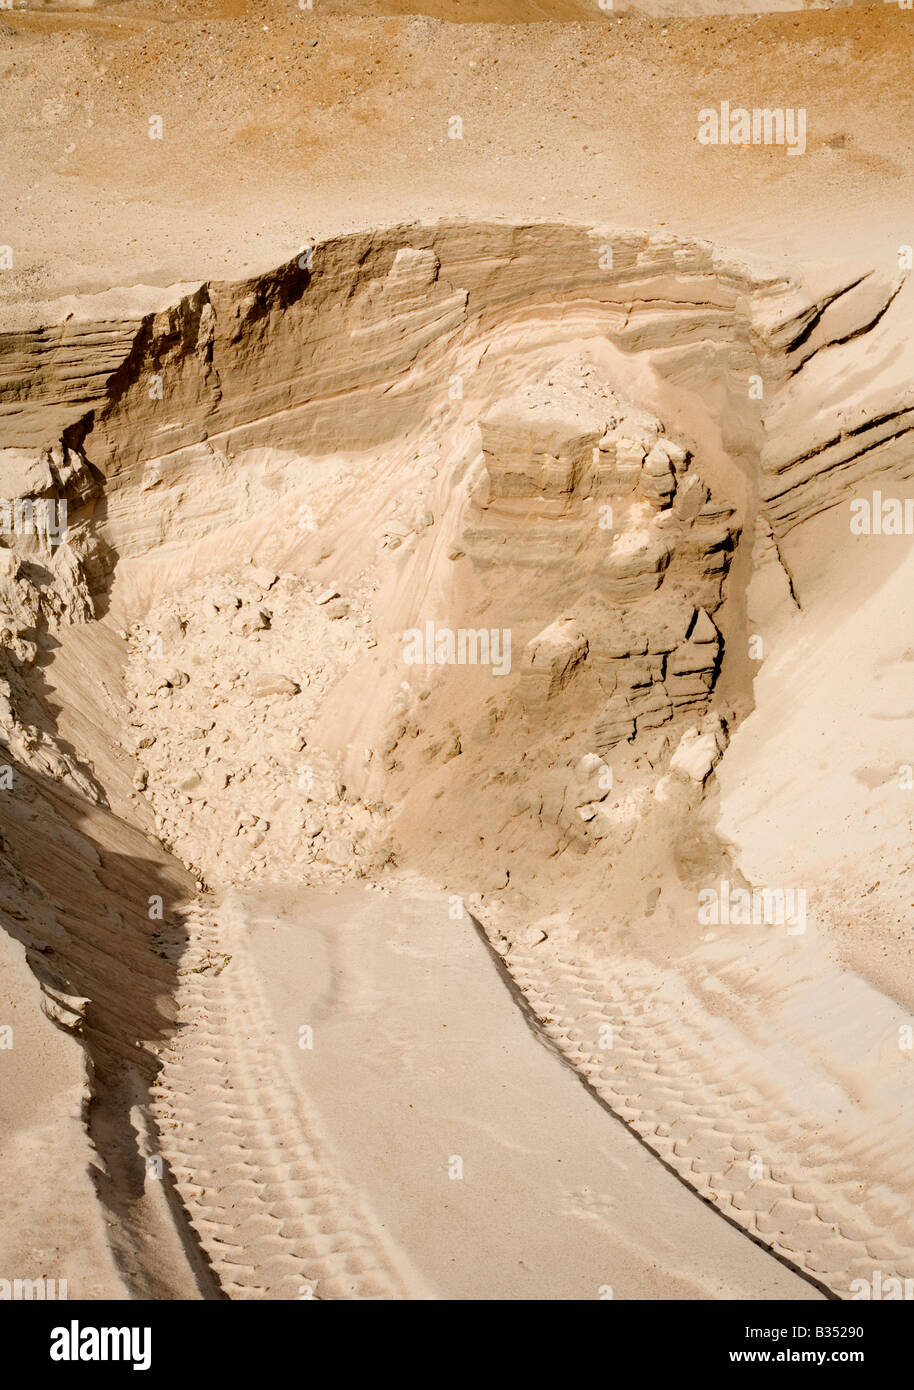 Sand extracted from gravel pit sand wall - Stock Image